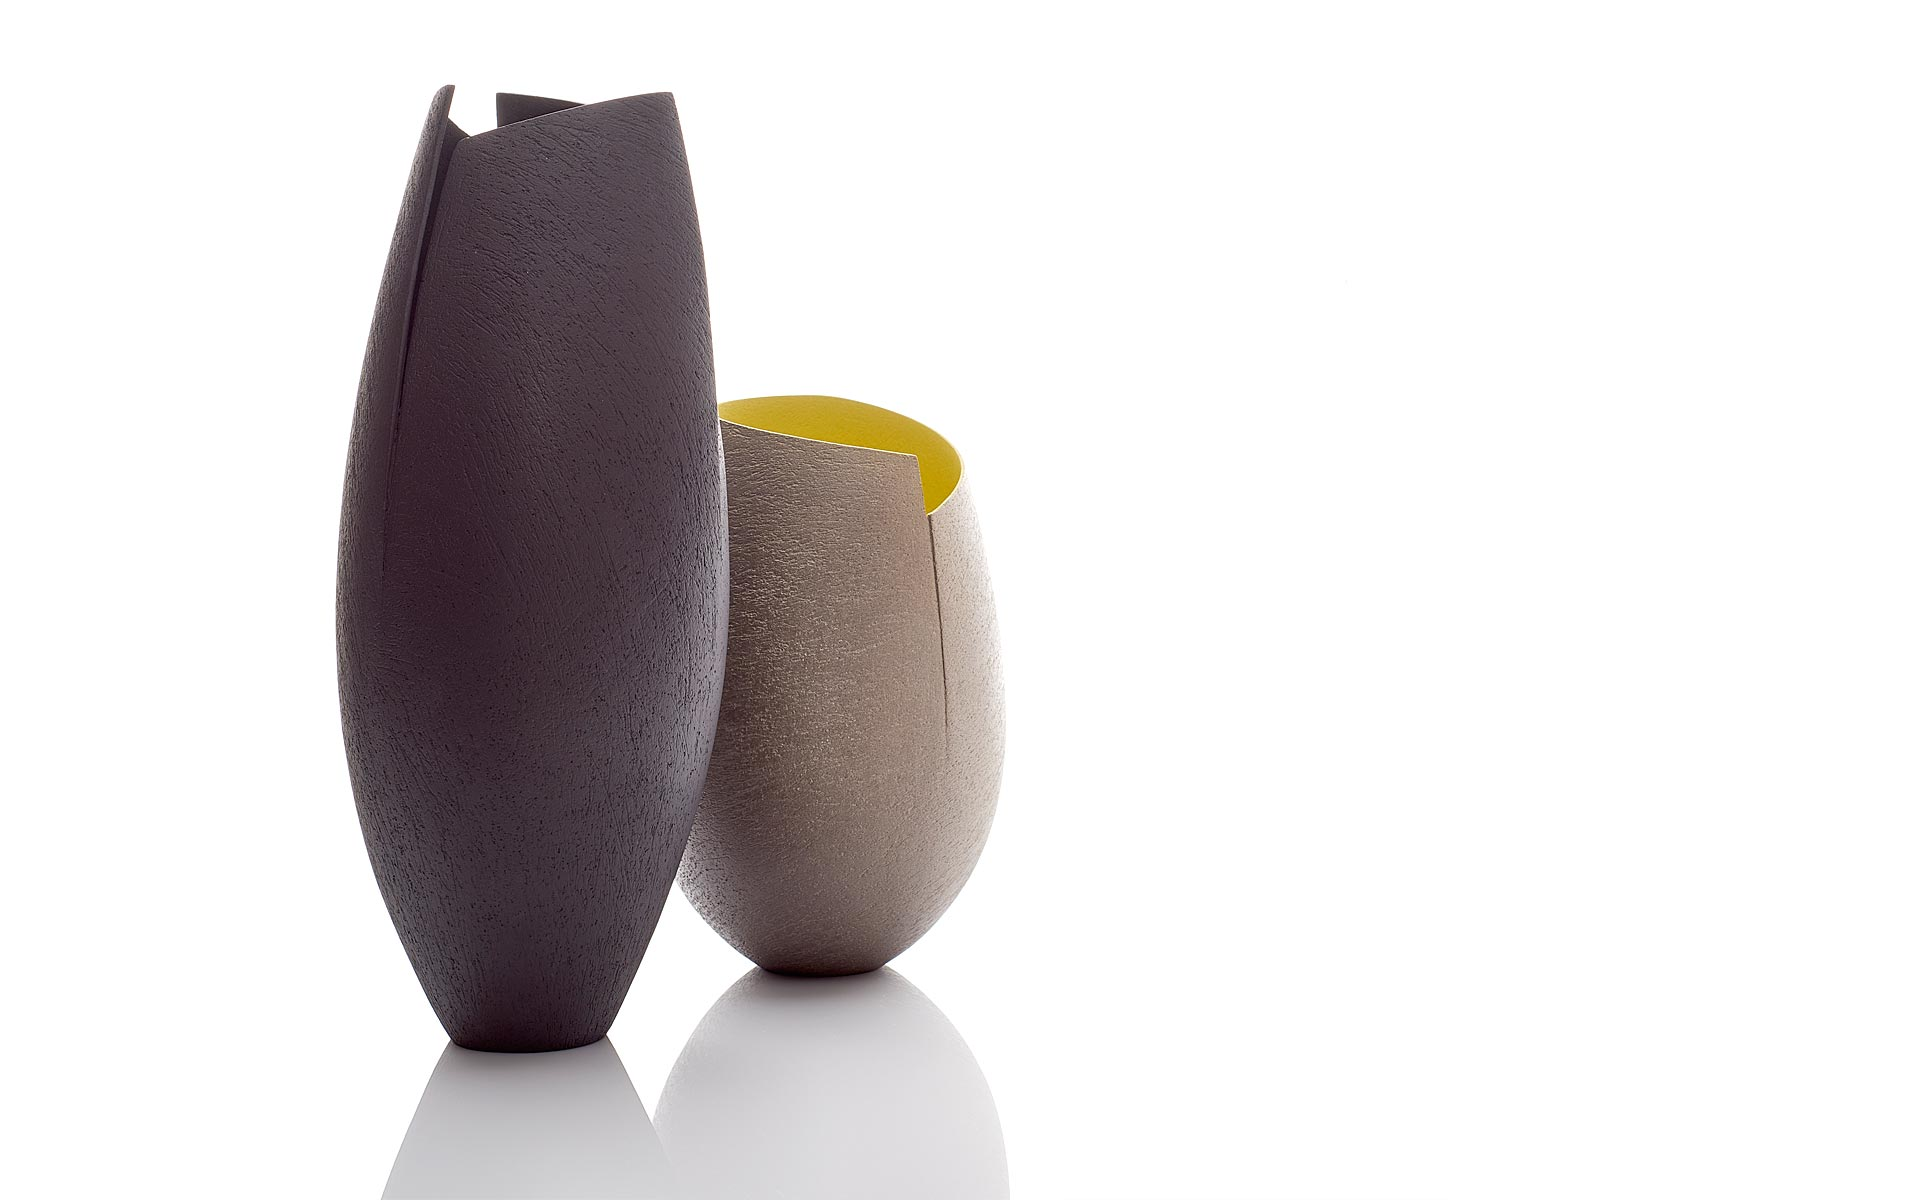 Two Cut Vessels